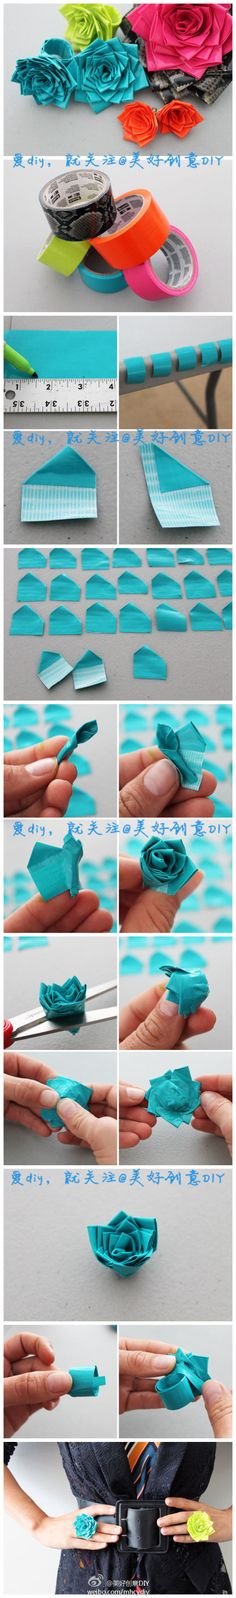 DIY Duct Tape Flower You don't have to do the last step(: